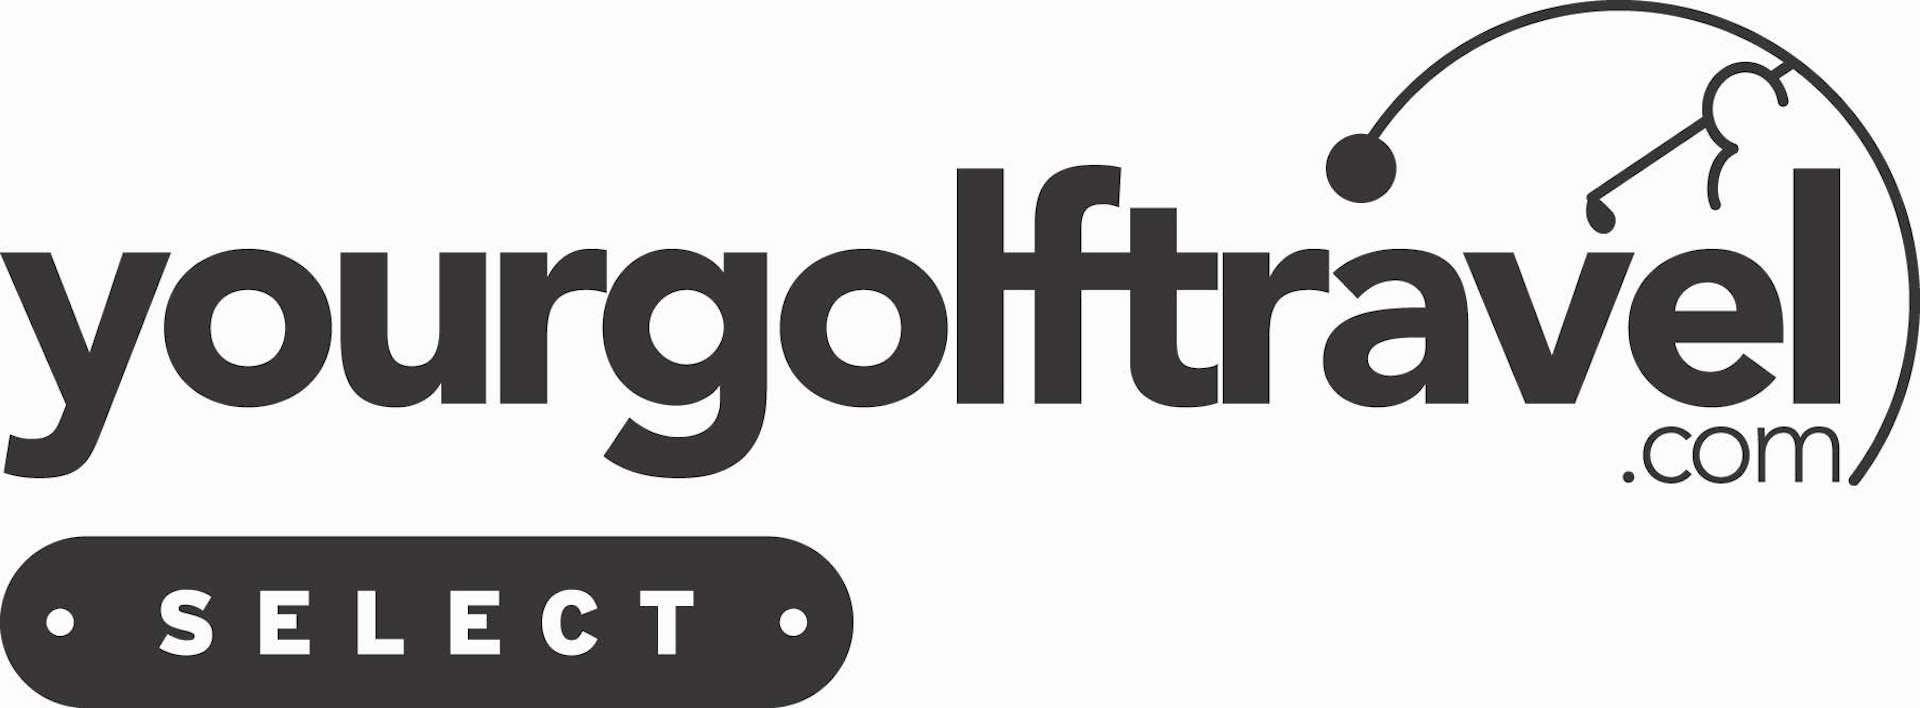 Your Golf Travel launches 'Select'